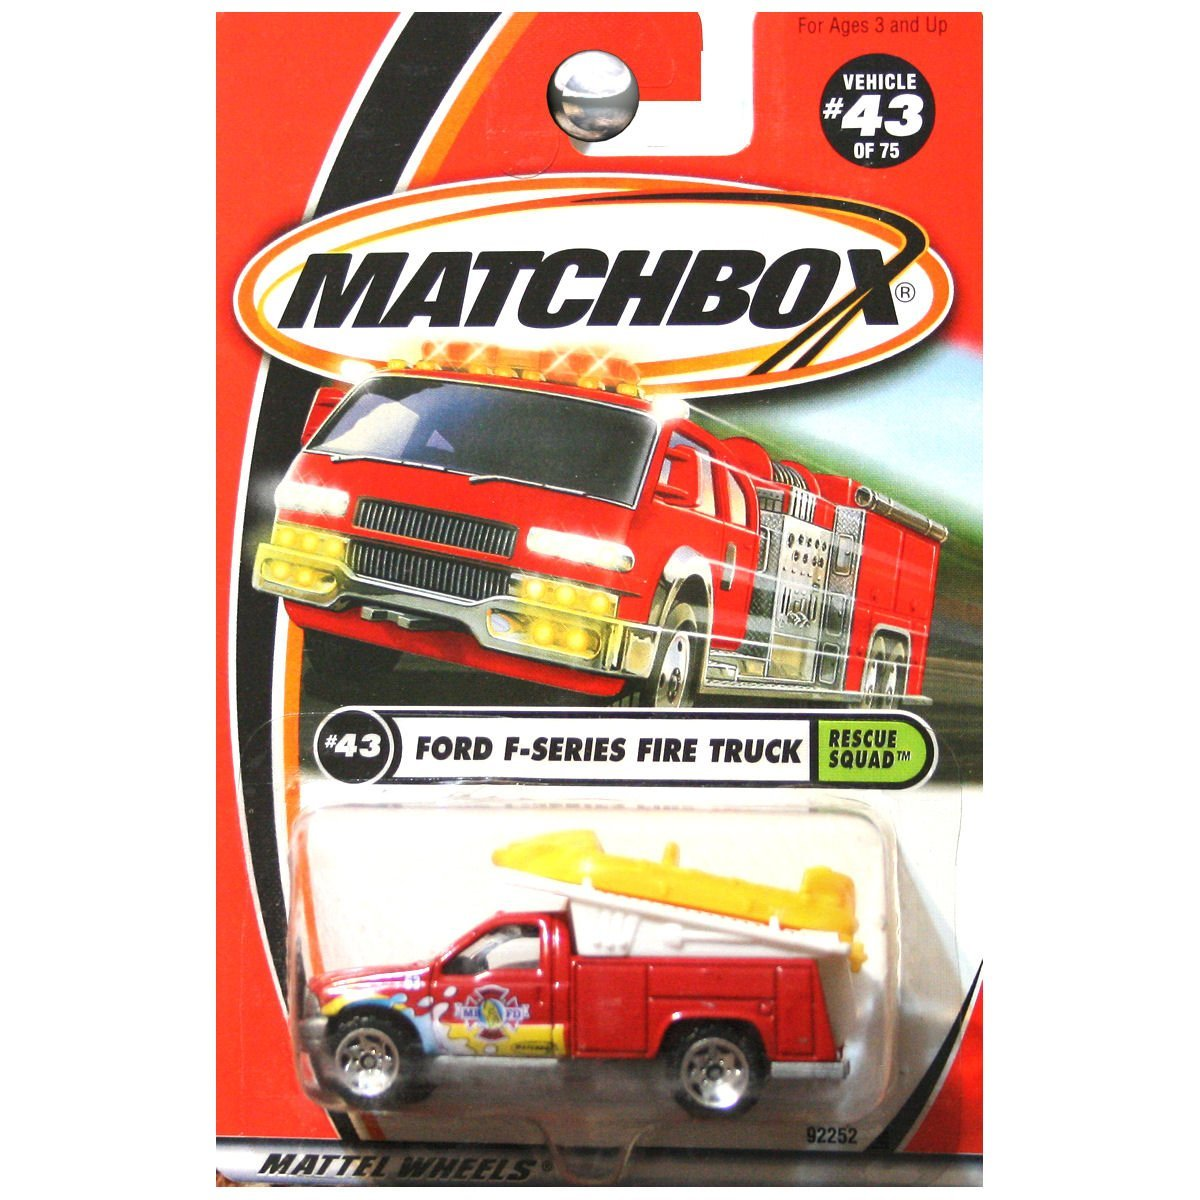 2001 Rescue Squad Ford F-Series Fire Truck Medic with Raft in Red #43 By Matchbox by